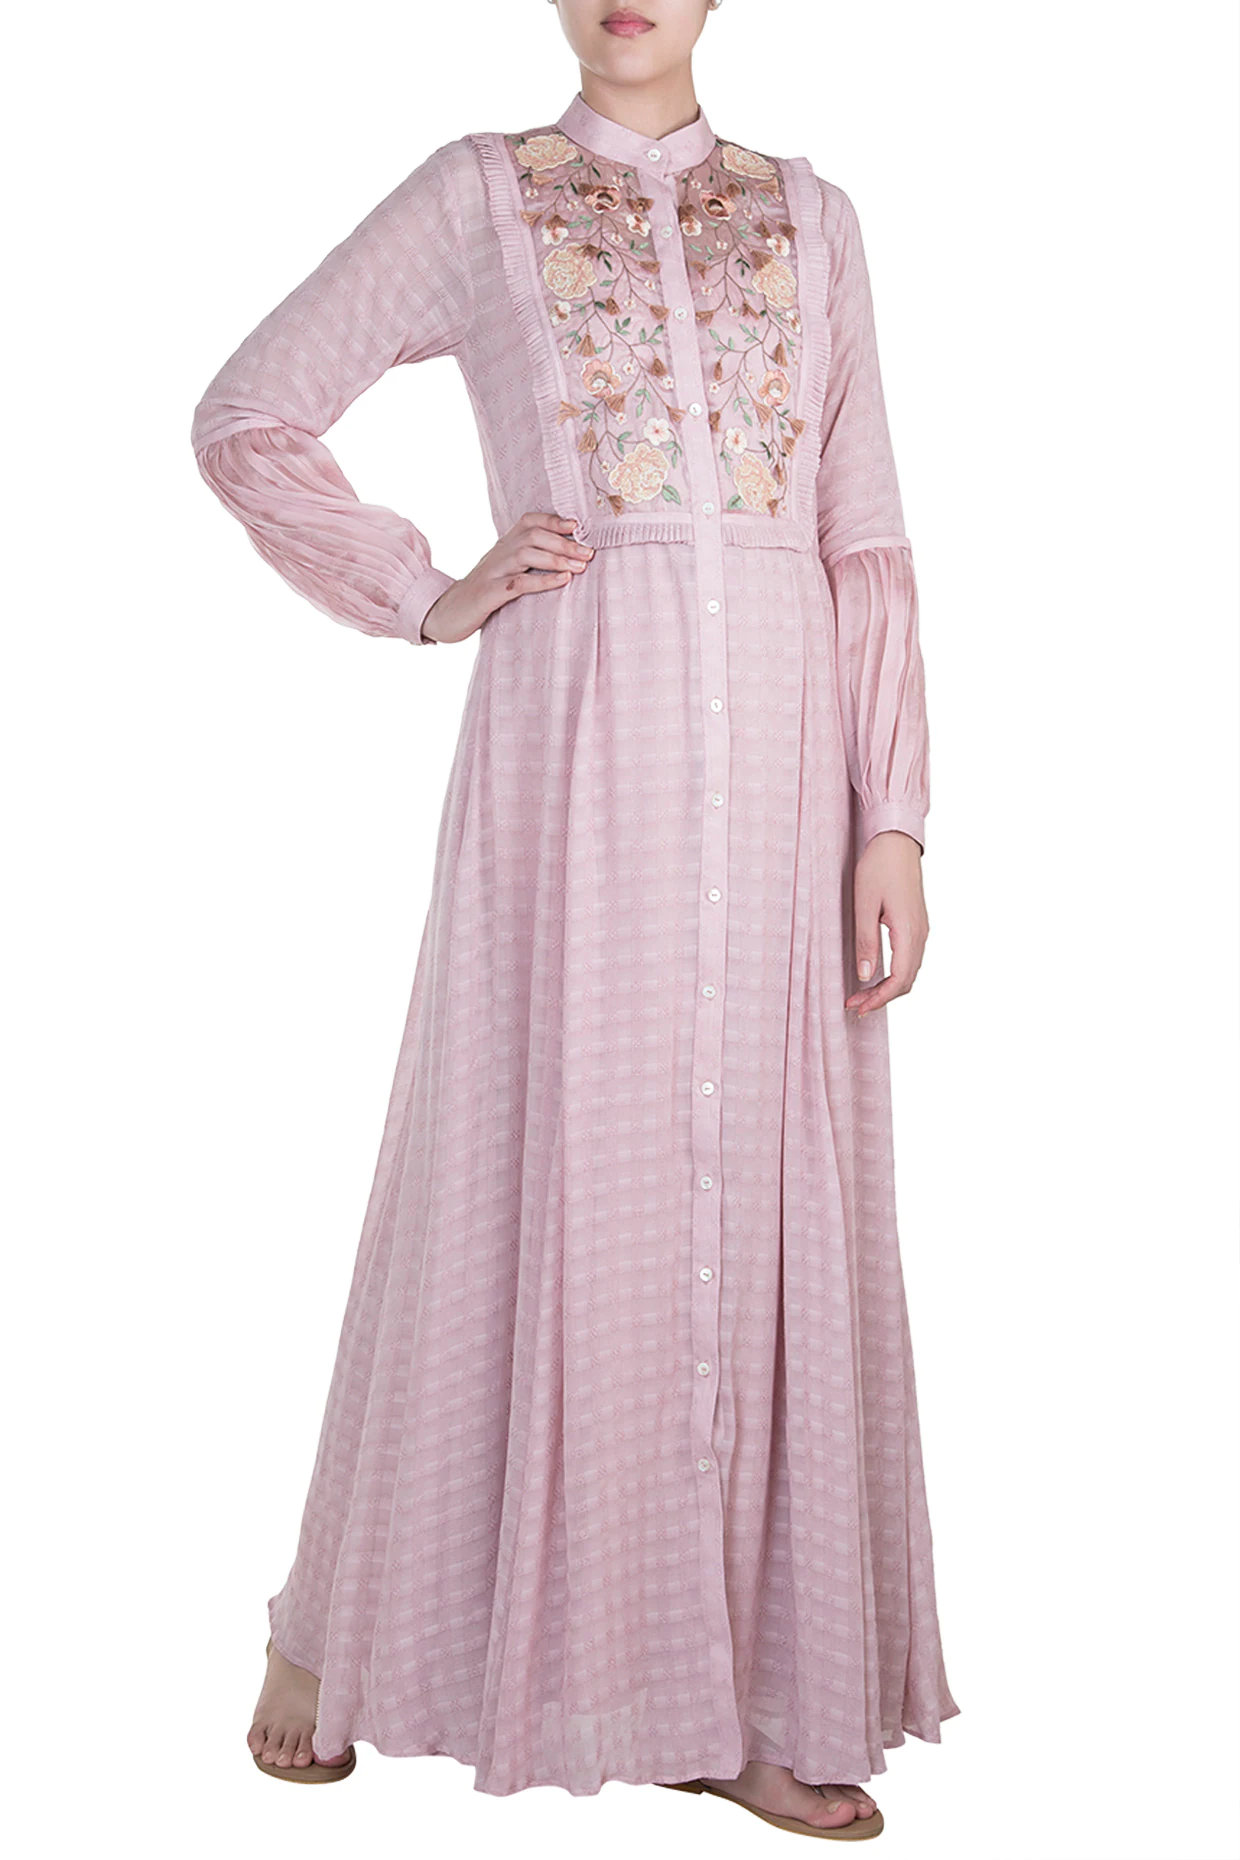 Apple Blossom Embroidered Maxi Dress by Pinnacle by Shruti Sancheti-Handpicked for You